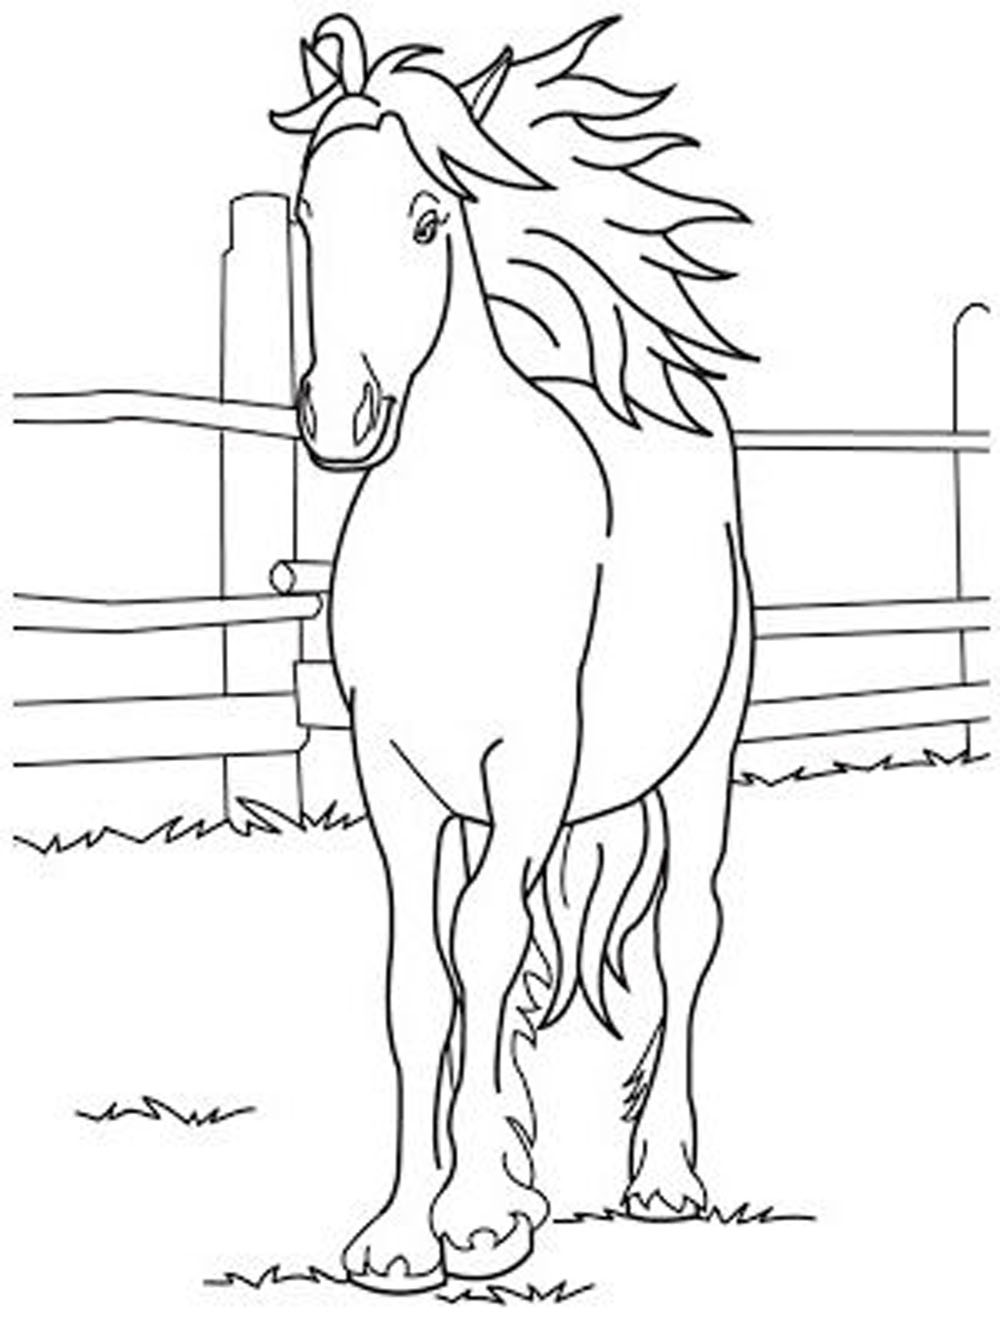 horse coloring image fun horse coloring pages for your kids printable image horse coloring